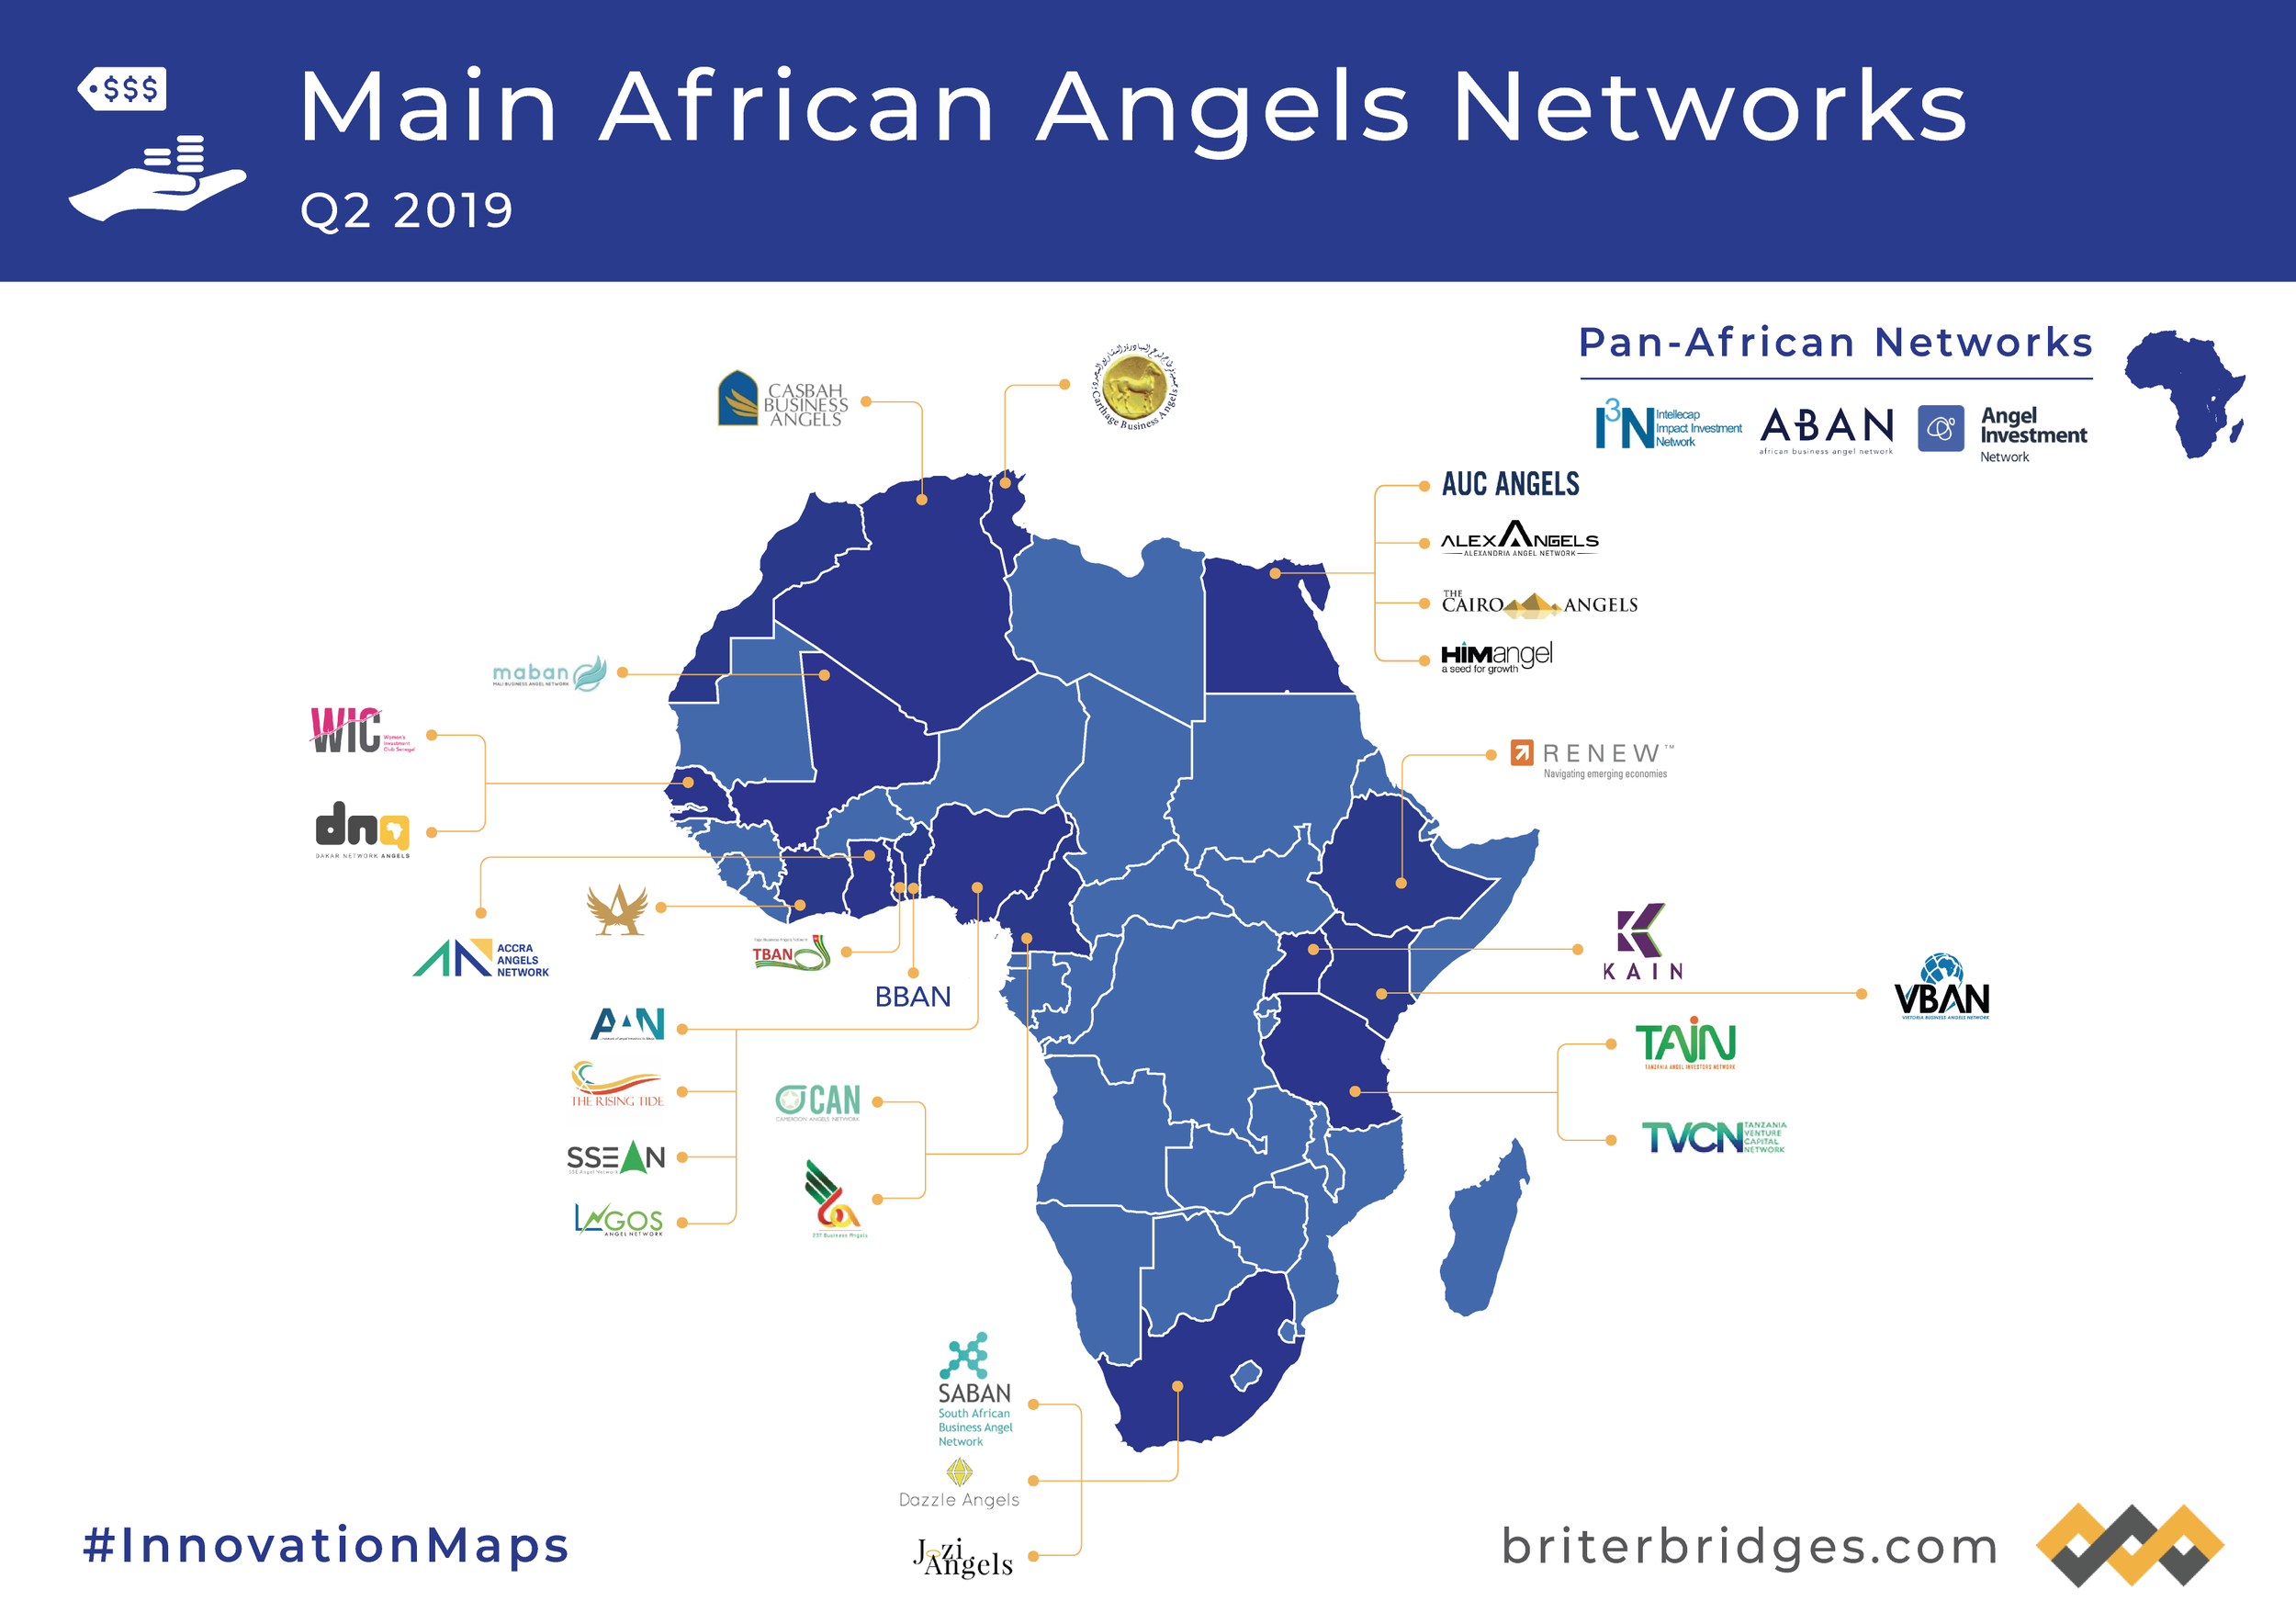 African Angels Networks